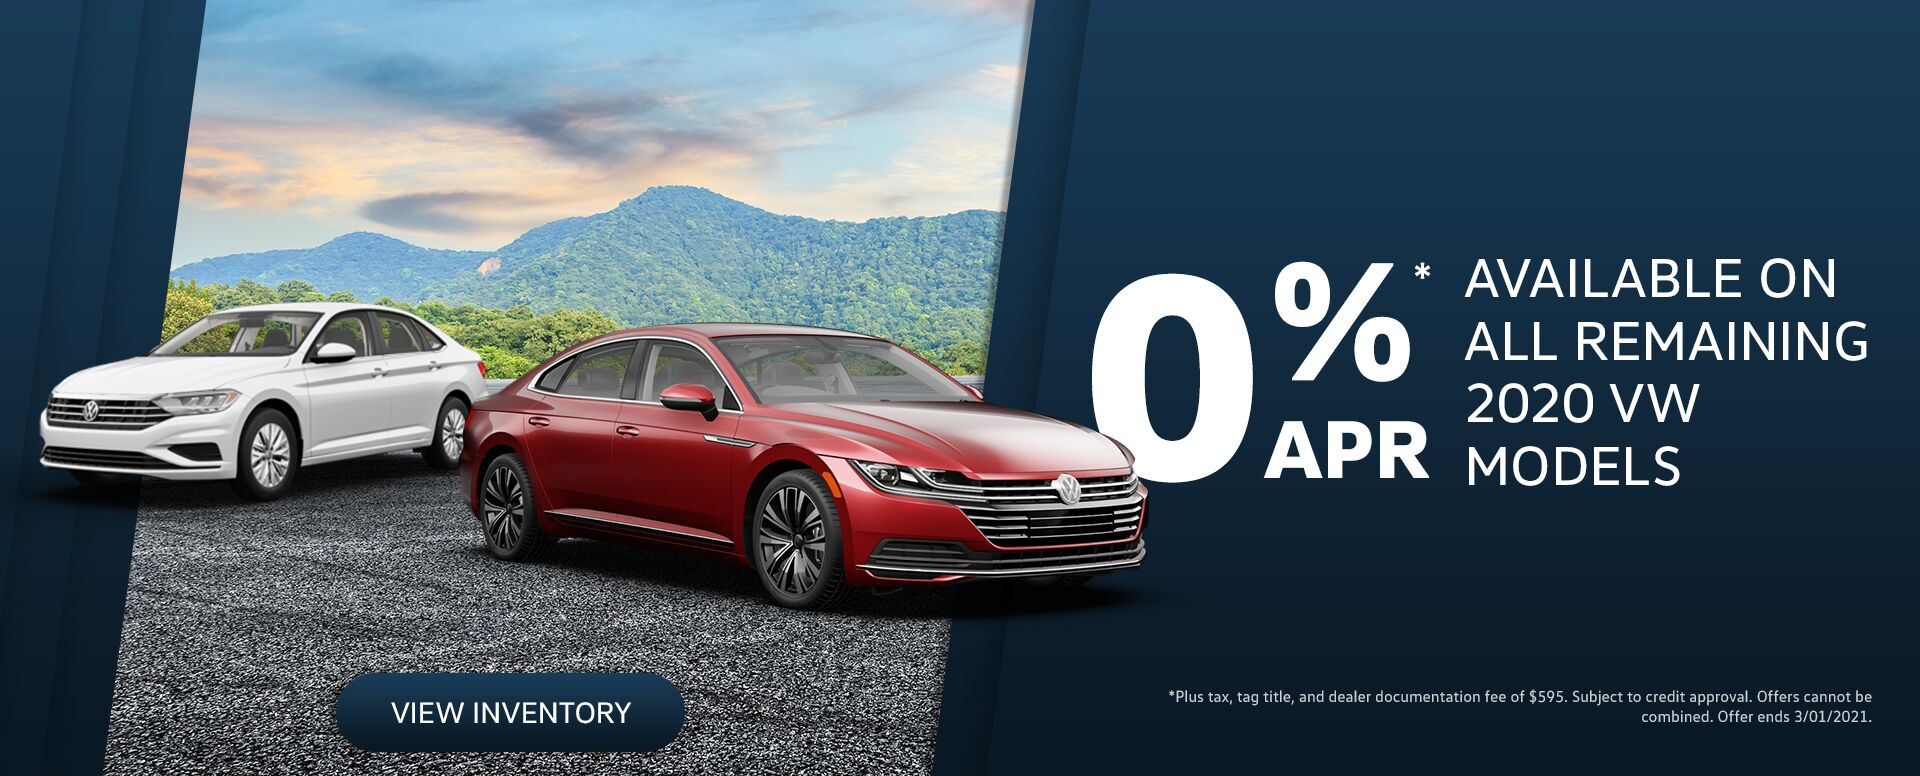 0% APR Available on 2020 Models at Don J